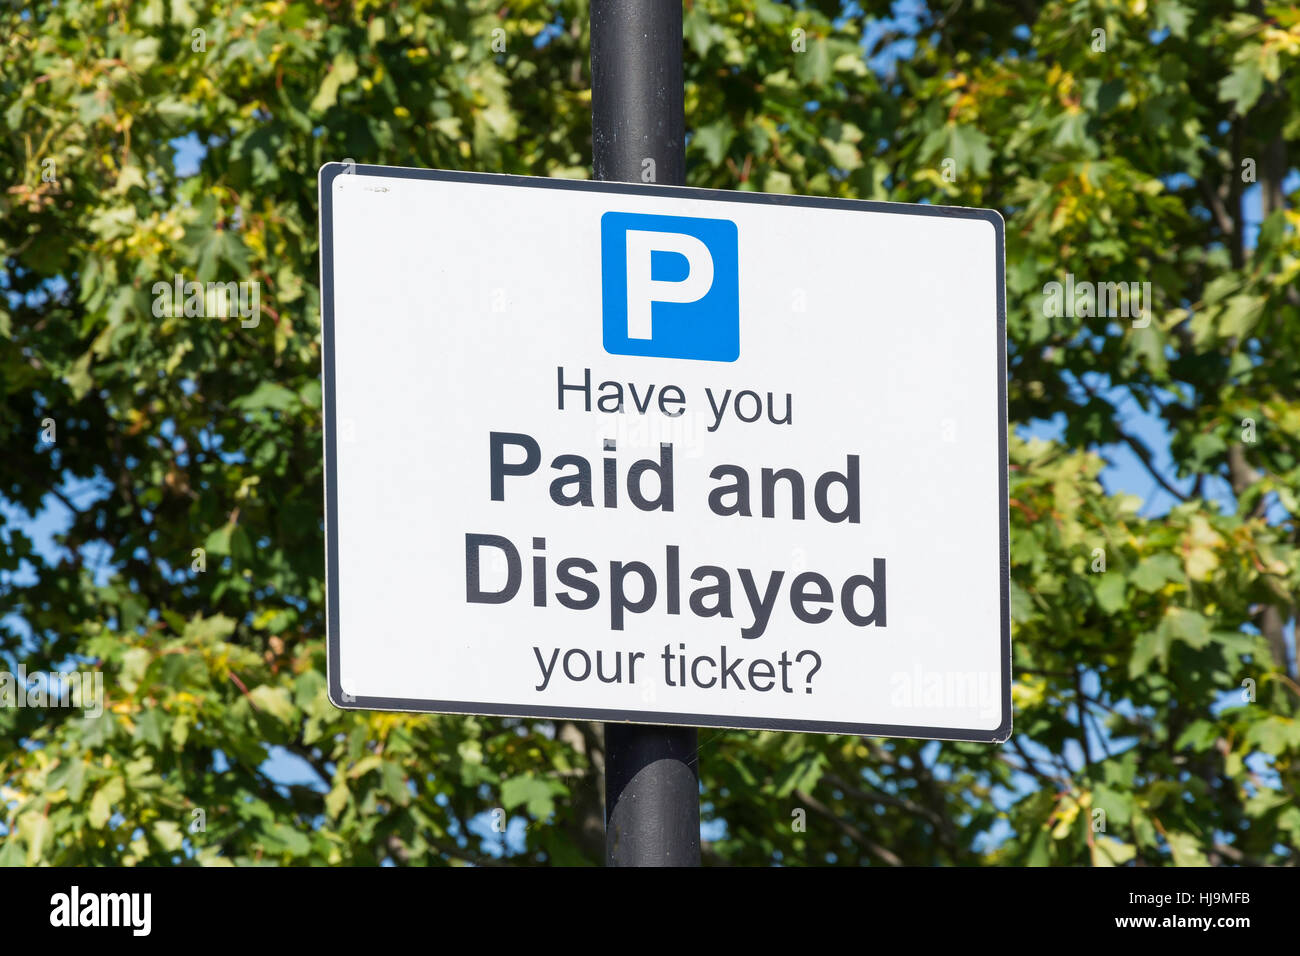 Payer et Afficher parking sign, Saint Martins à pied Parking, Dorking, Surrey, Angleterre, Royaume-Uni Photo Stock